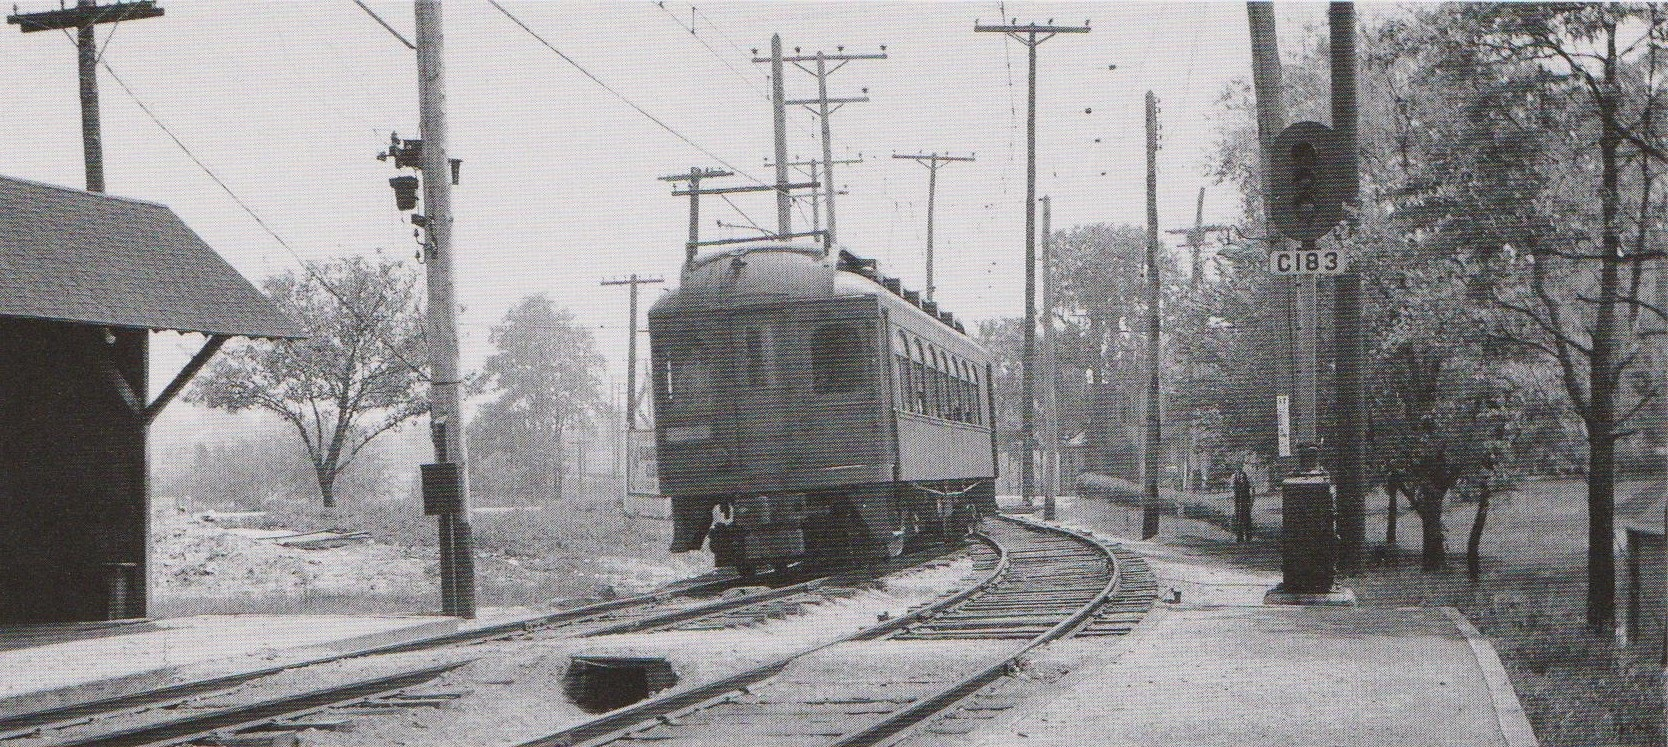 """Baltimore & Annapolis Car #92 approaches Shipley Station heading North. Shipley Station, Maryland Date: May 1936. Source: J.P. Shuman Photo. from """"Baltimore Light Rail, Then & Now"""" by Herbert H. Harwood Jr."""